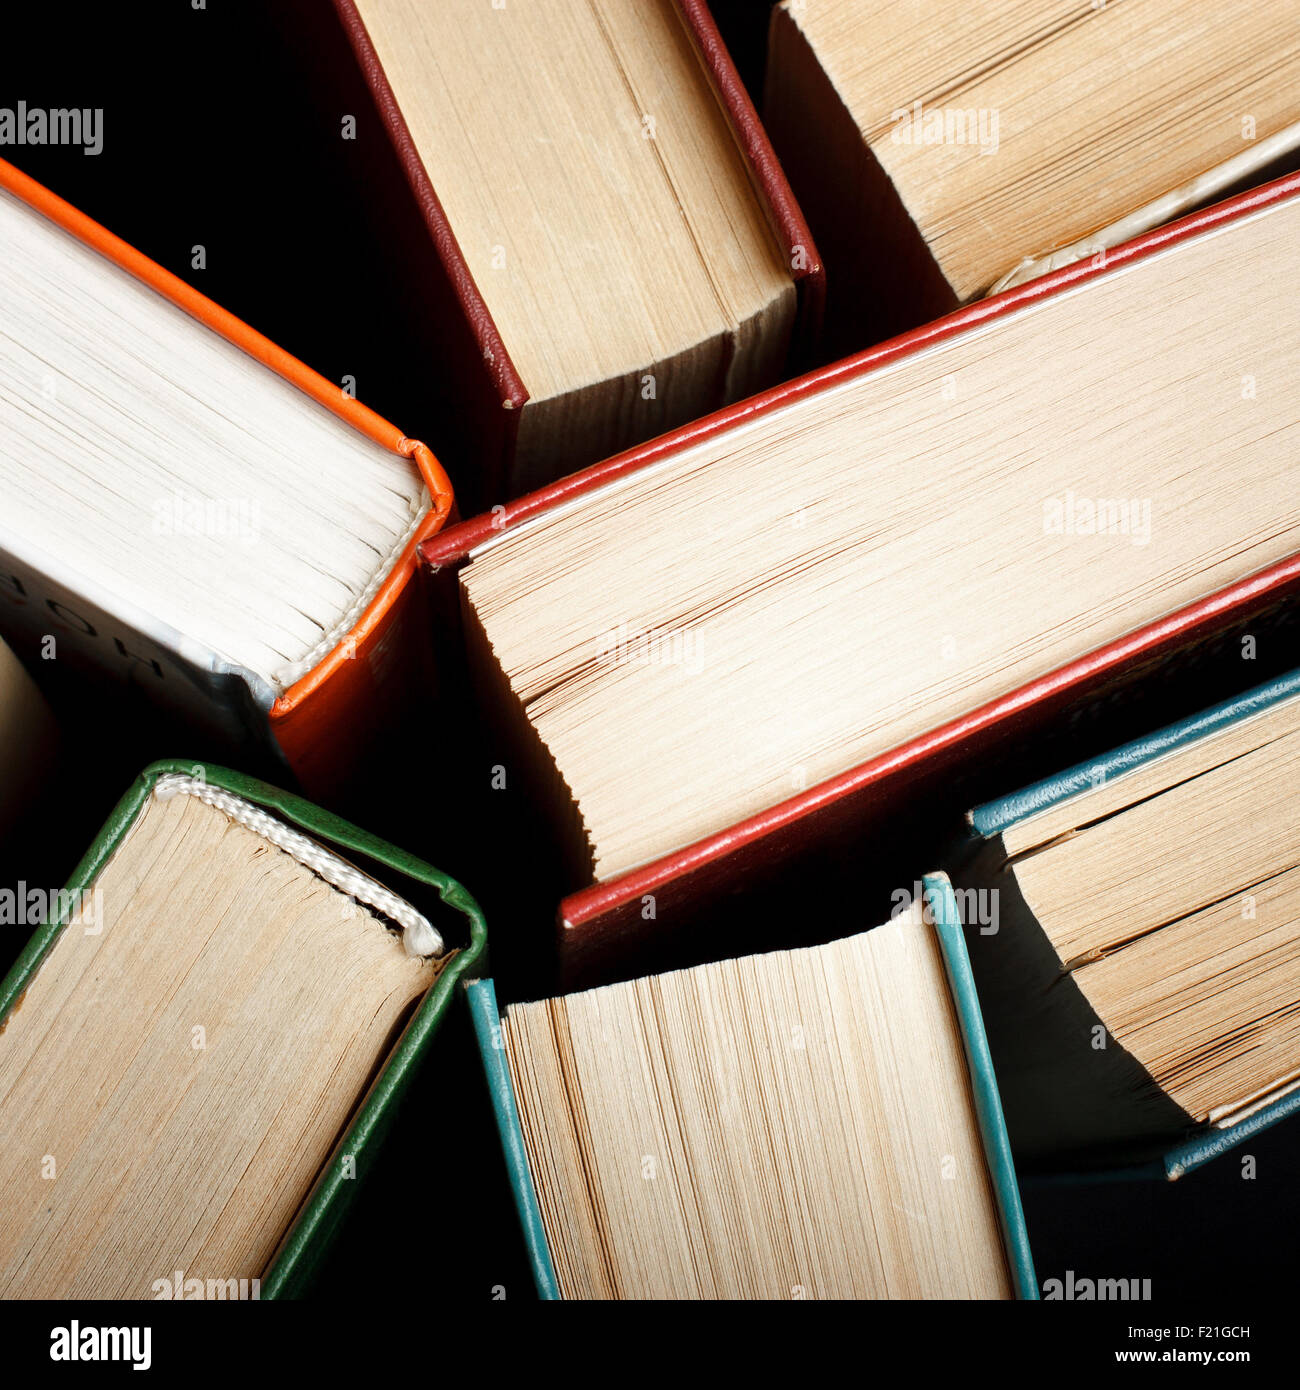 Old and used hardback books or text books seen from above. Books and reading are essential for self improvement, - Stock Image